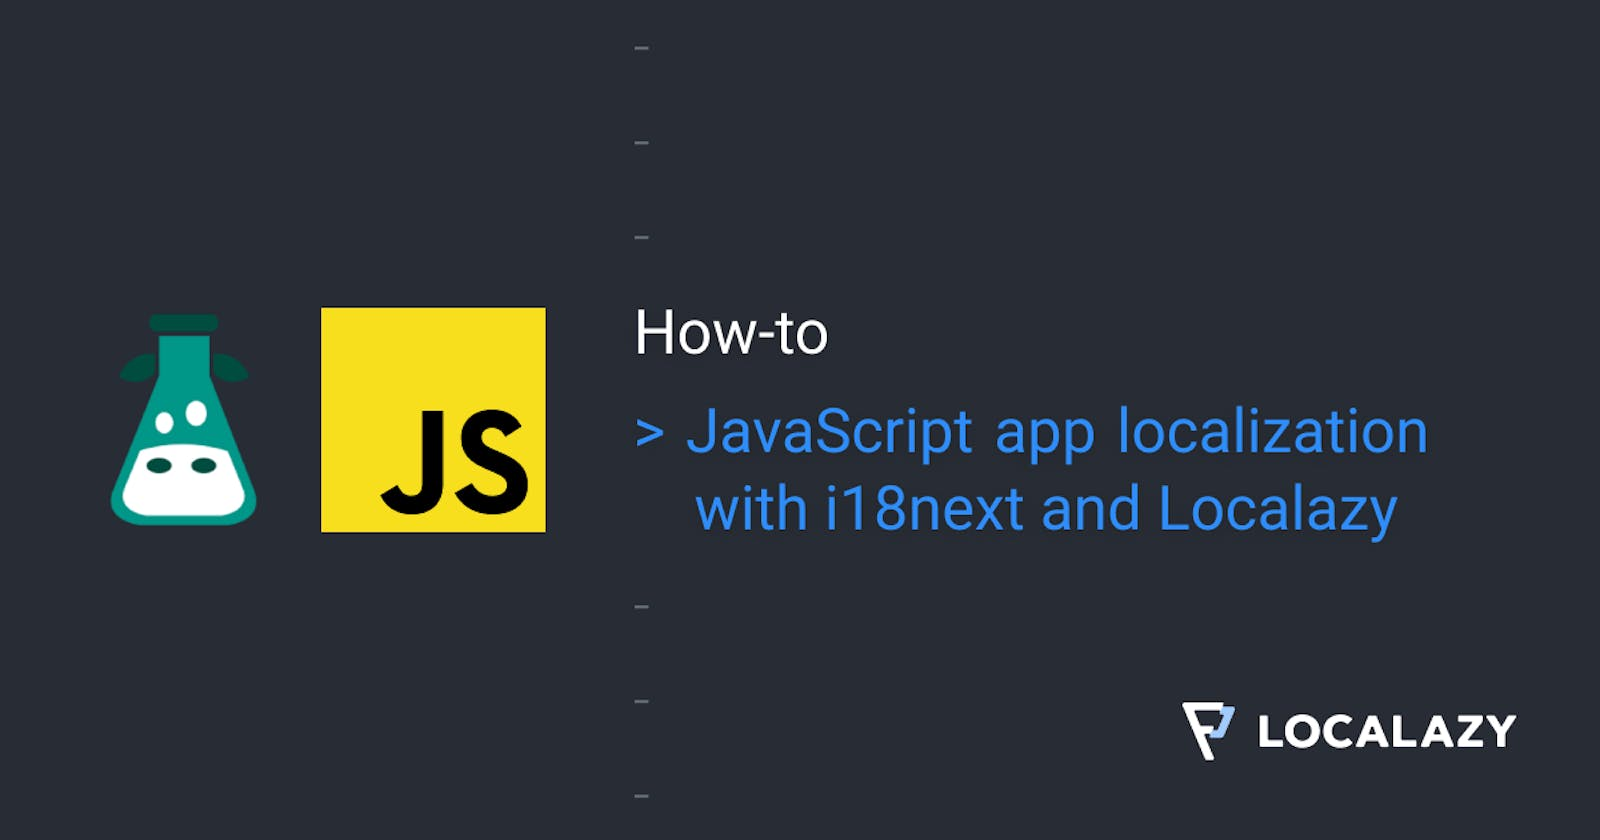 JavaScript app localization with i18next and Localazy